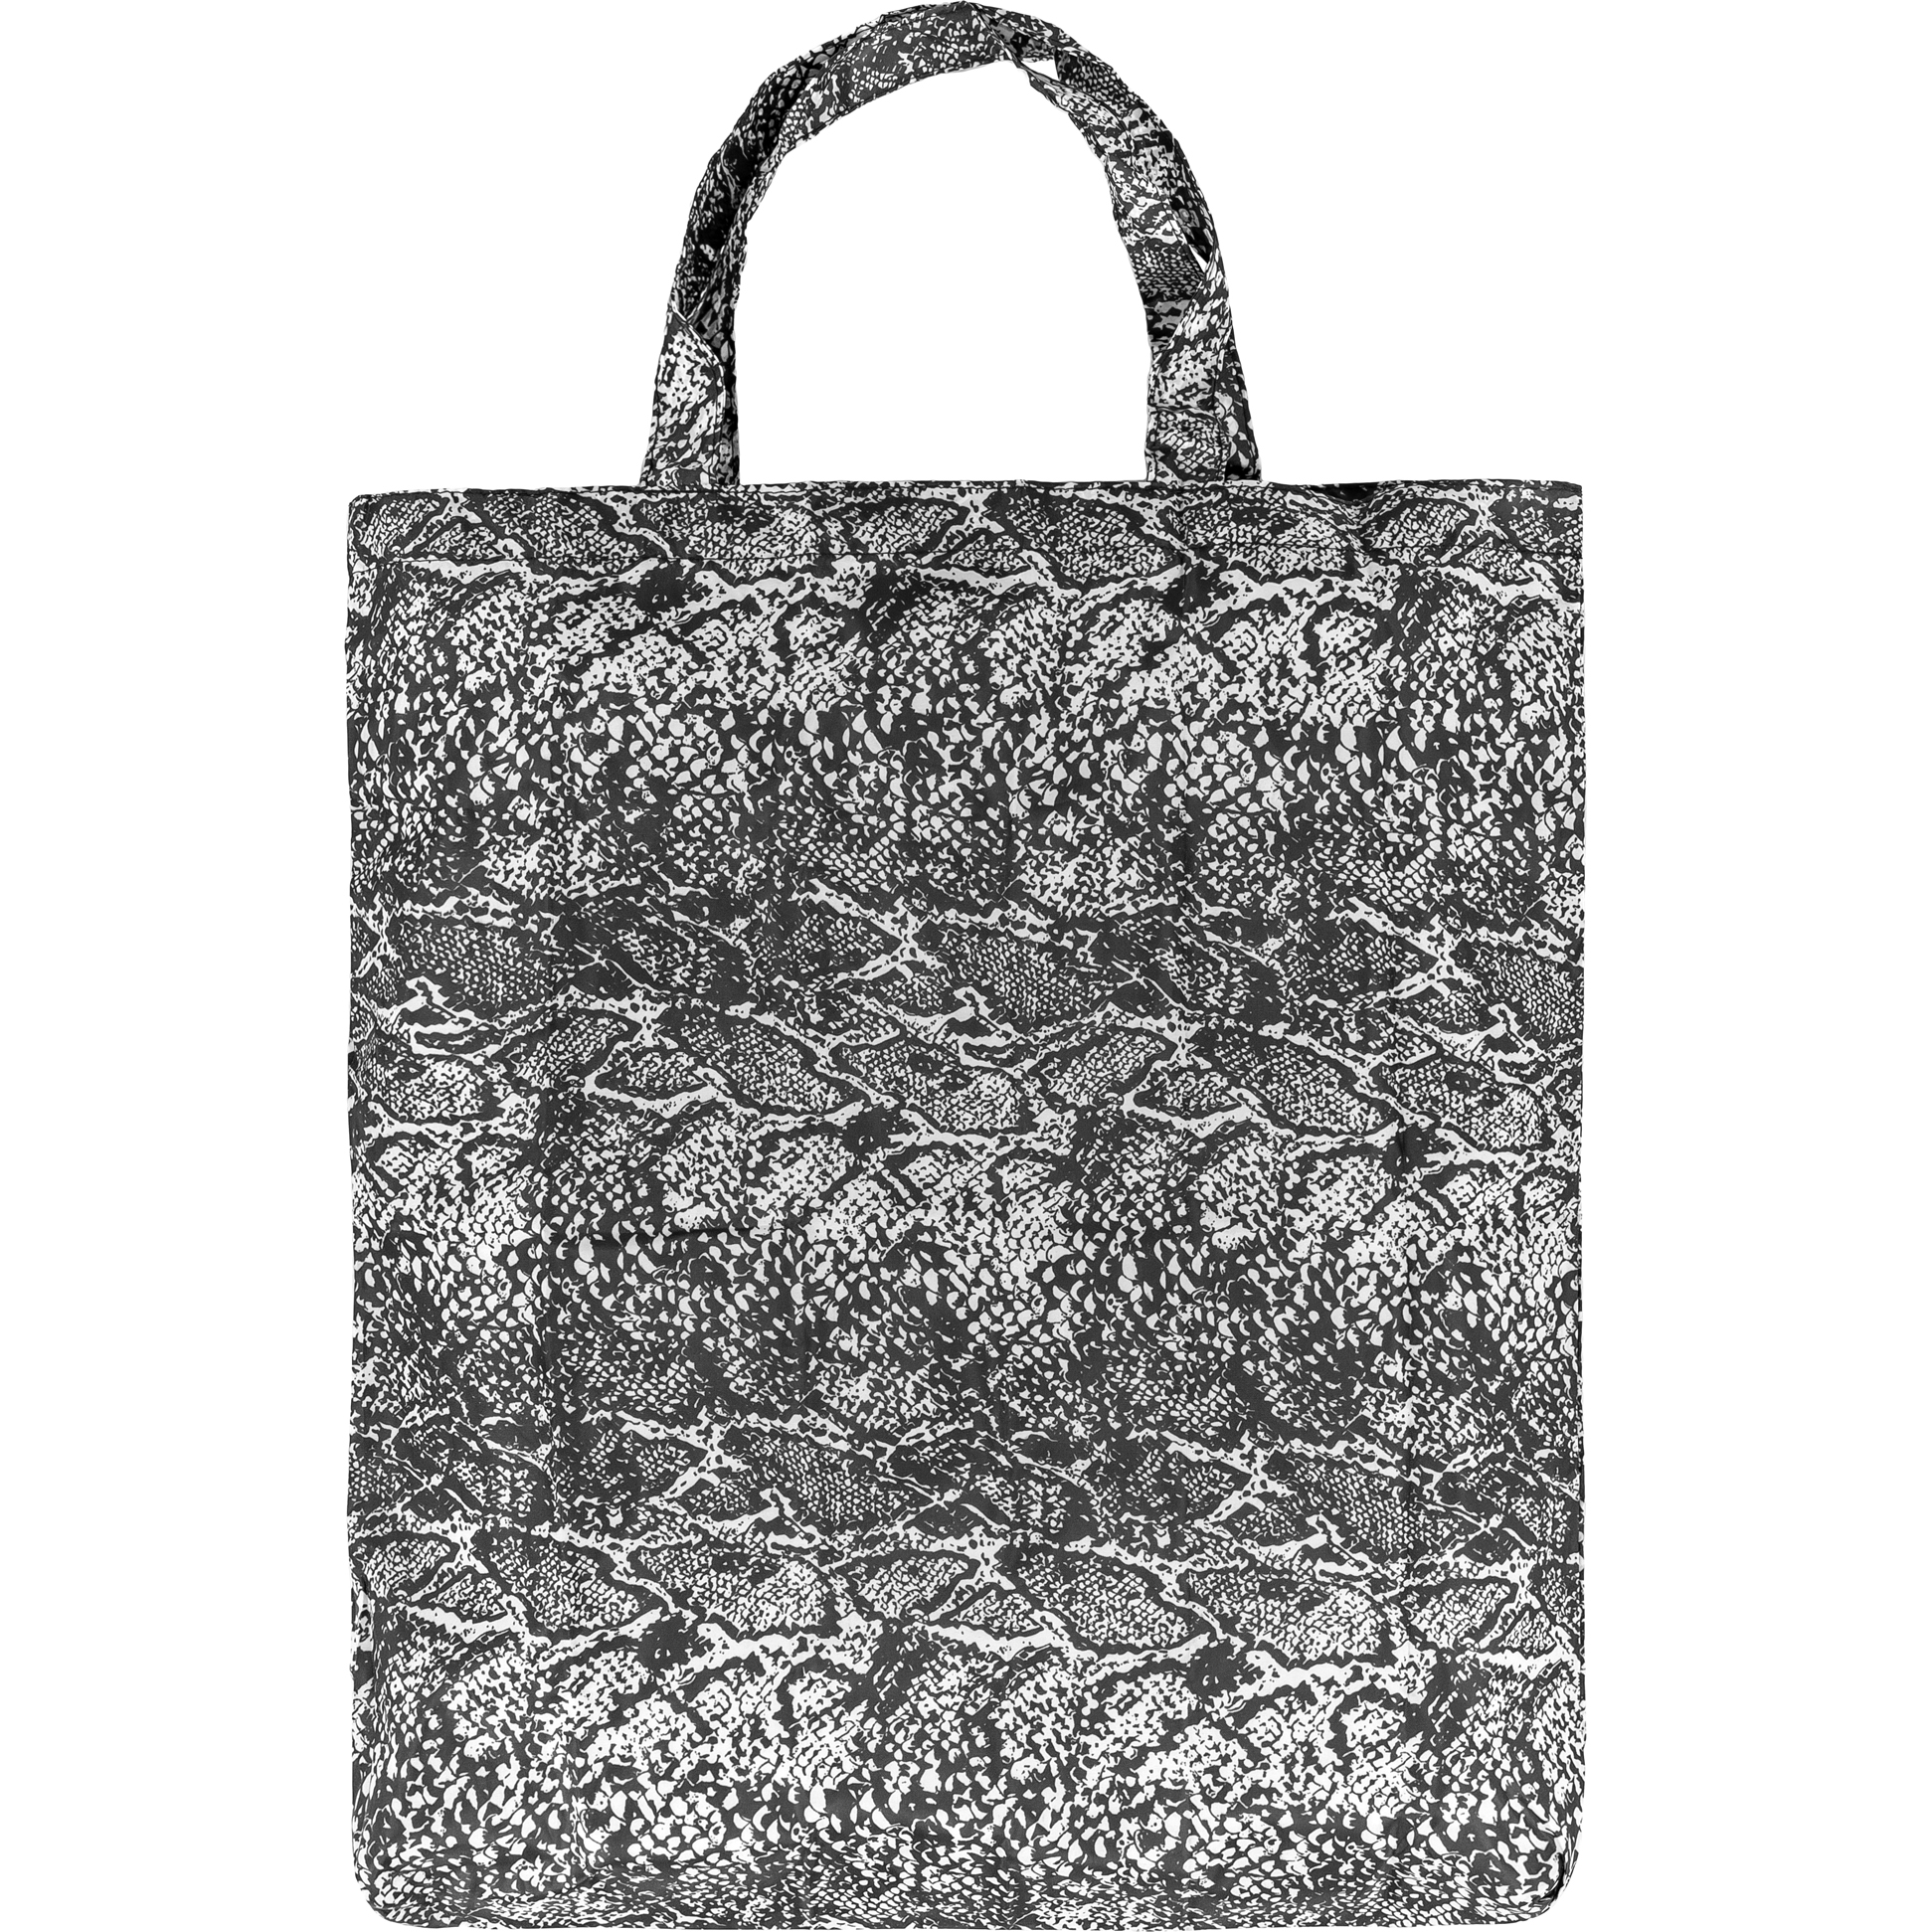 Snake Print Reusable Shopping Bag (CB019)